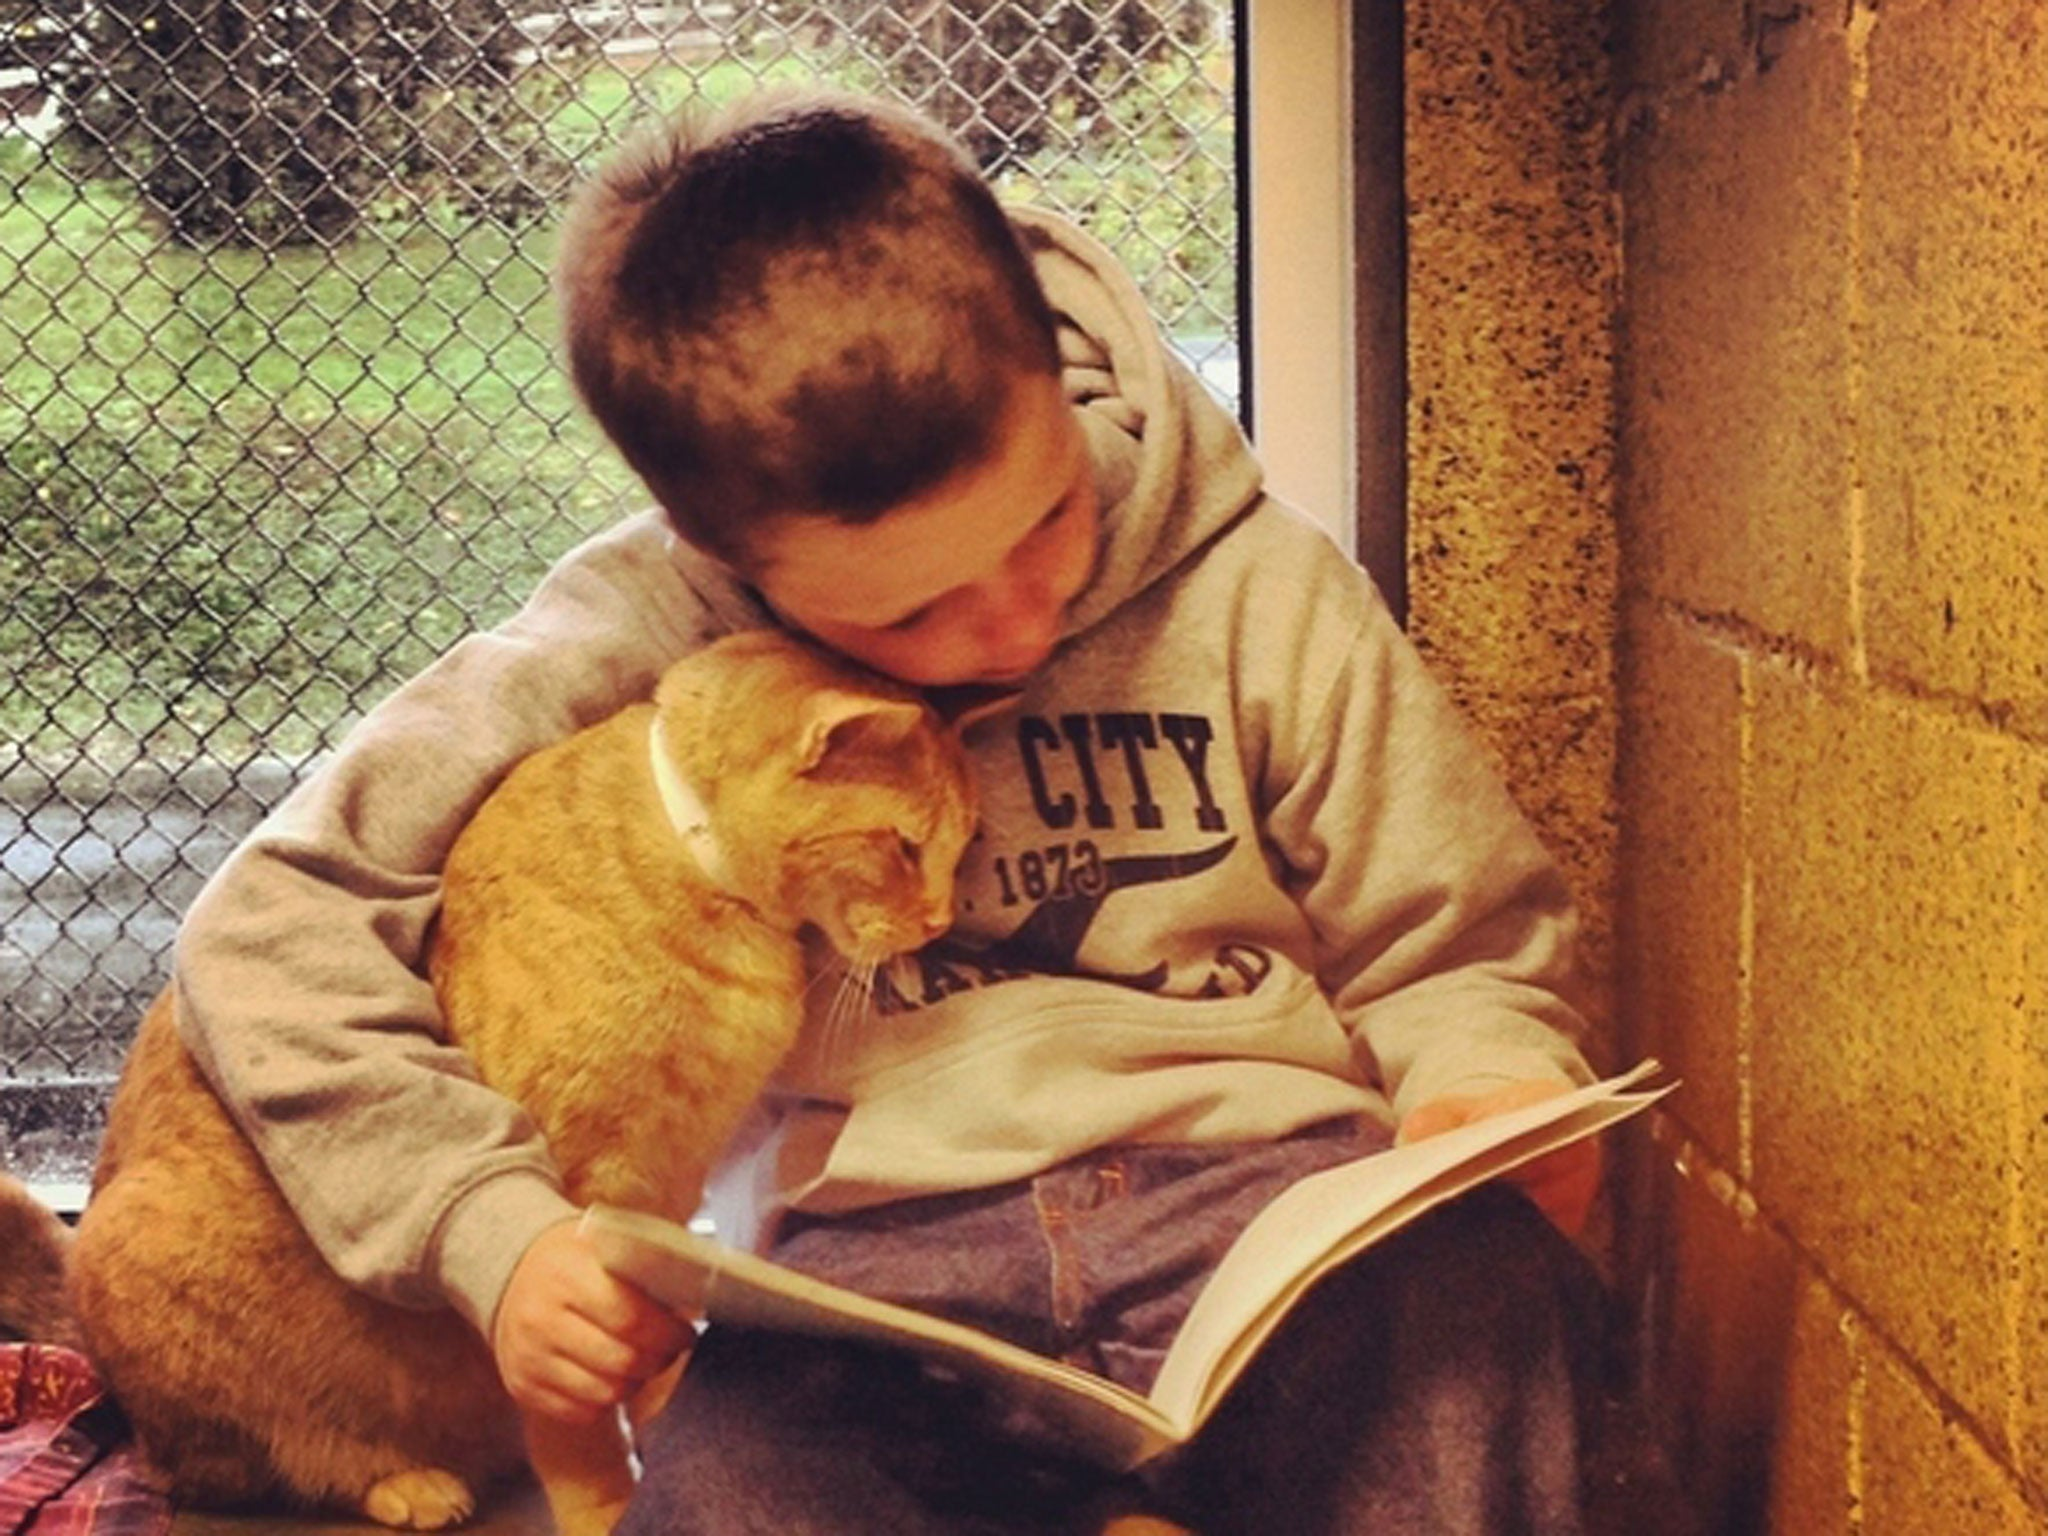 Children read out loud to cats in adorable pictures | The ...